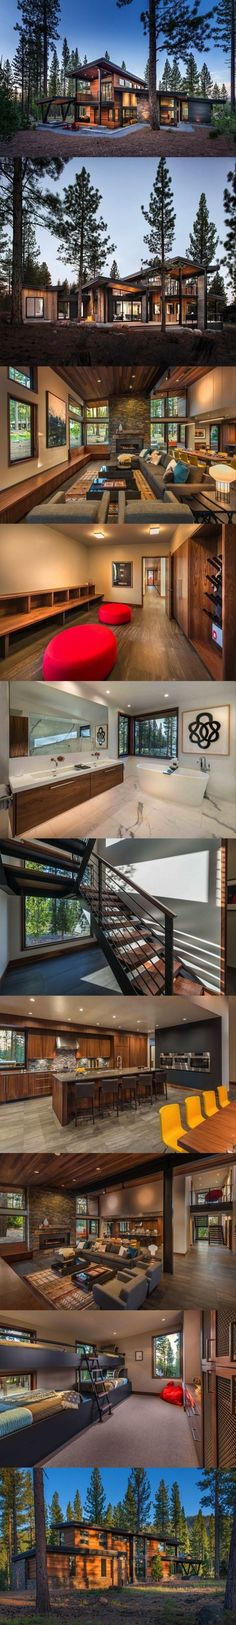 Container House - Chalet - Who Else Wants Simple Step-By-Step Plans To Design And Build A Container Home From Scratch?